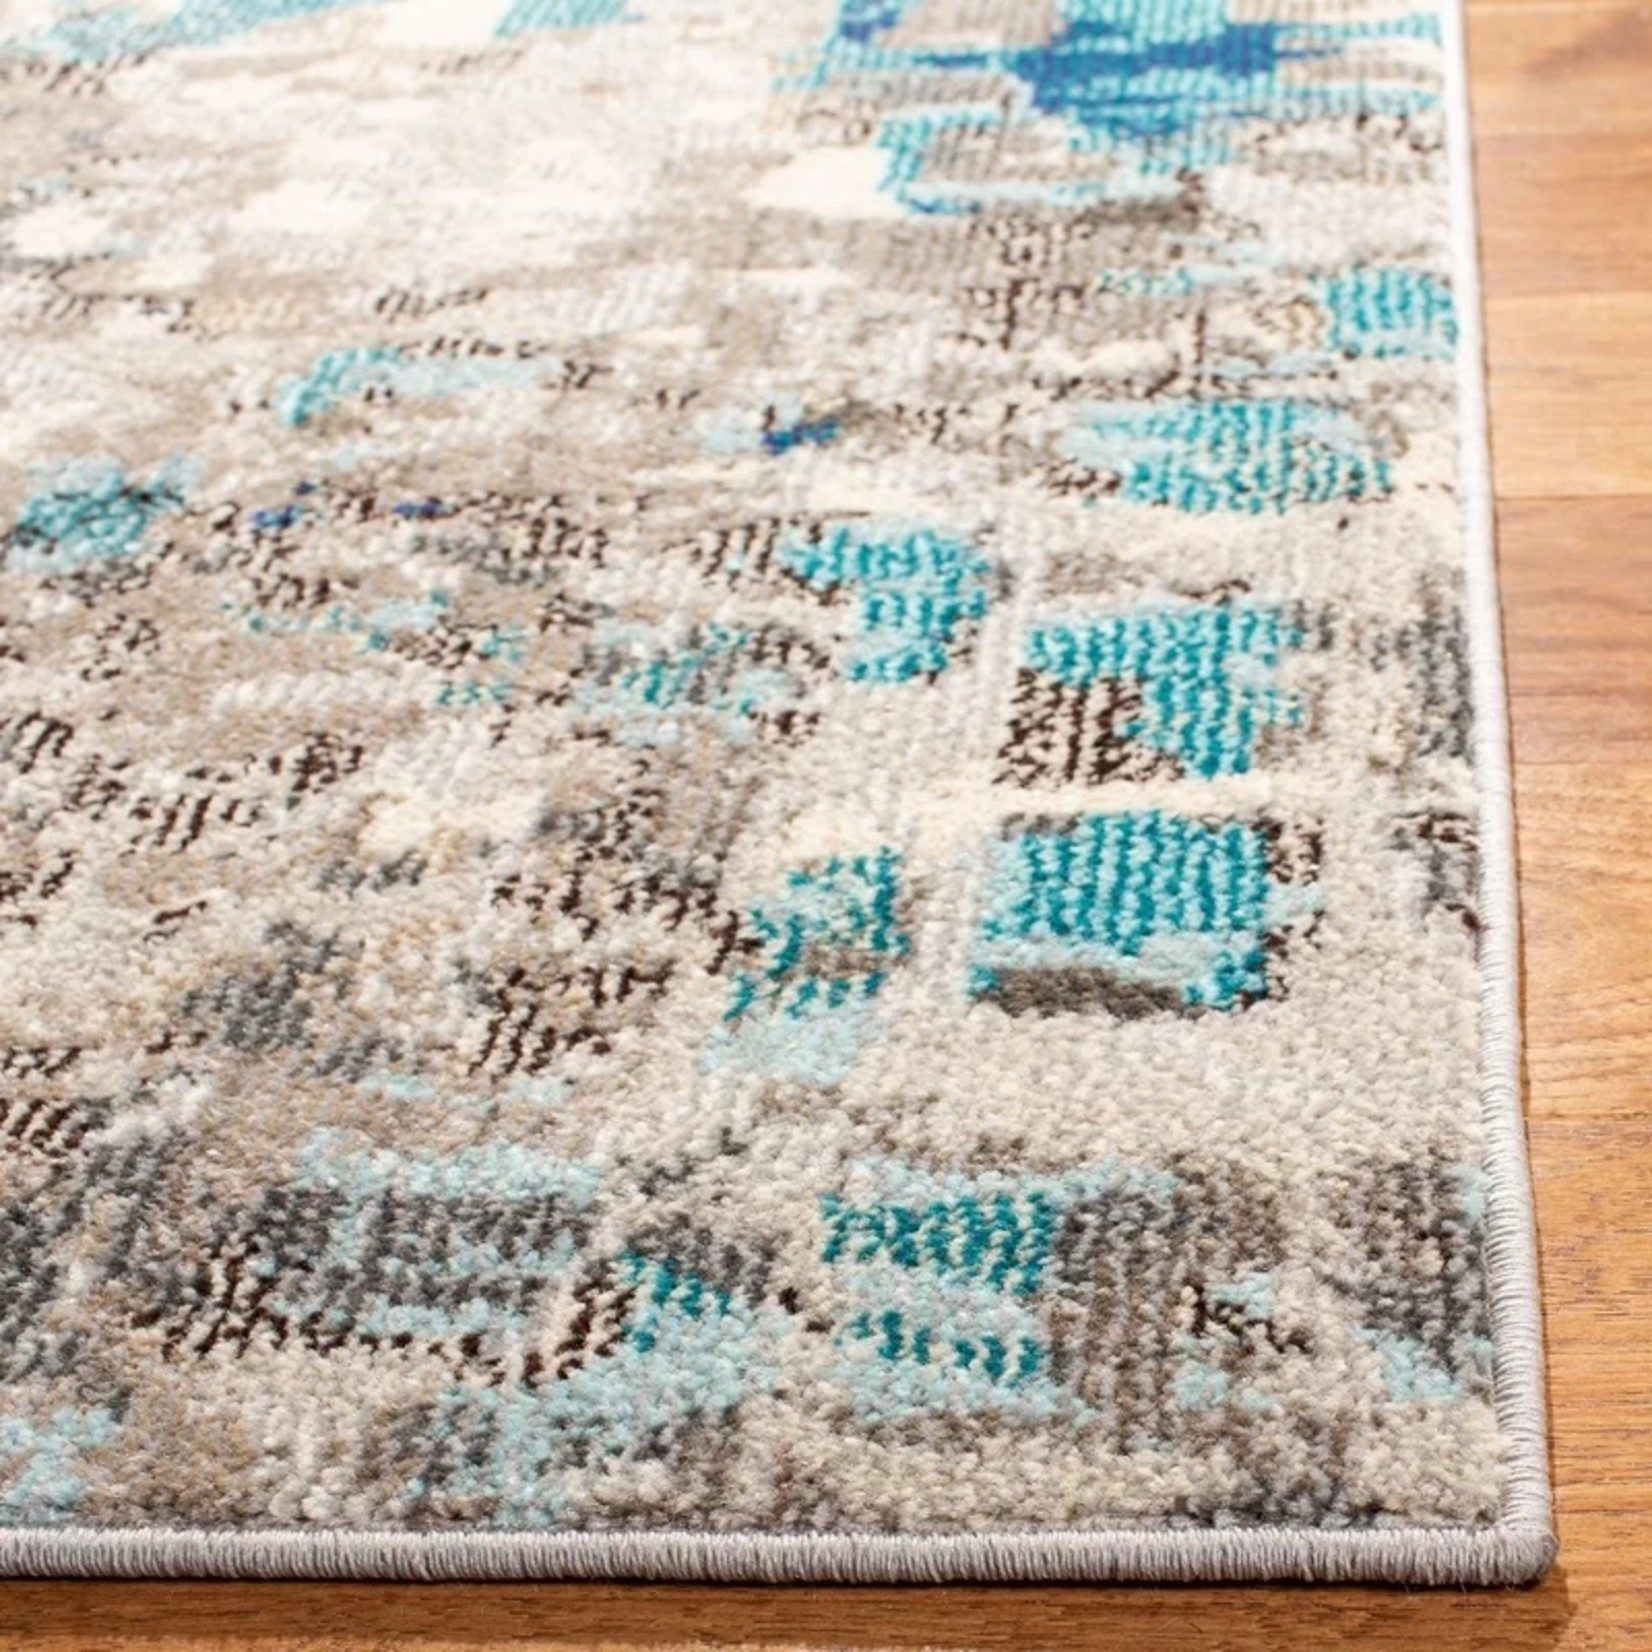 *9' Square - Pless Blue Area Rug - Dirt on back